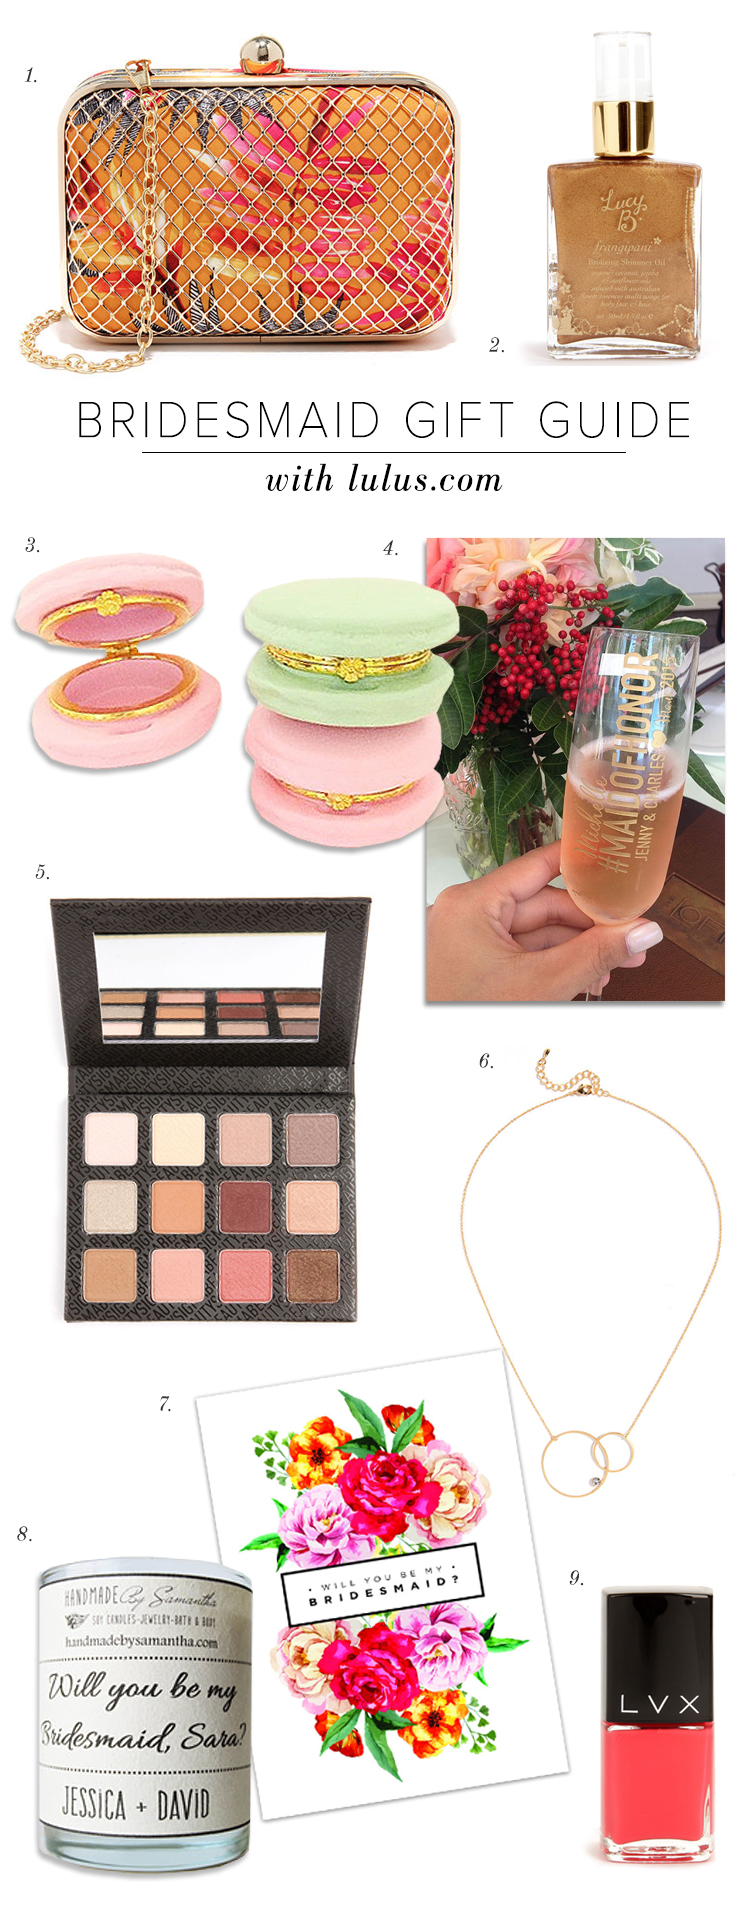 Bridesmaid Gift Guide